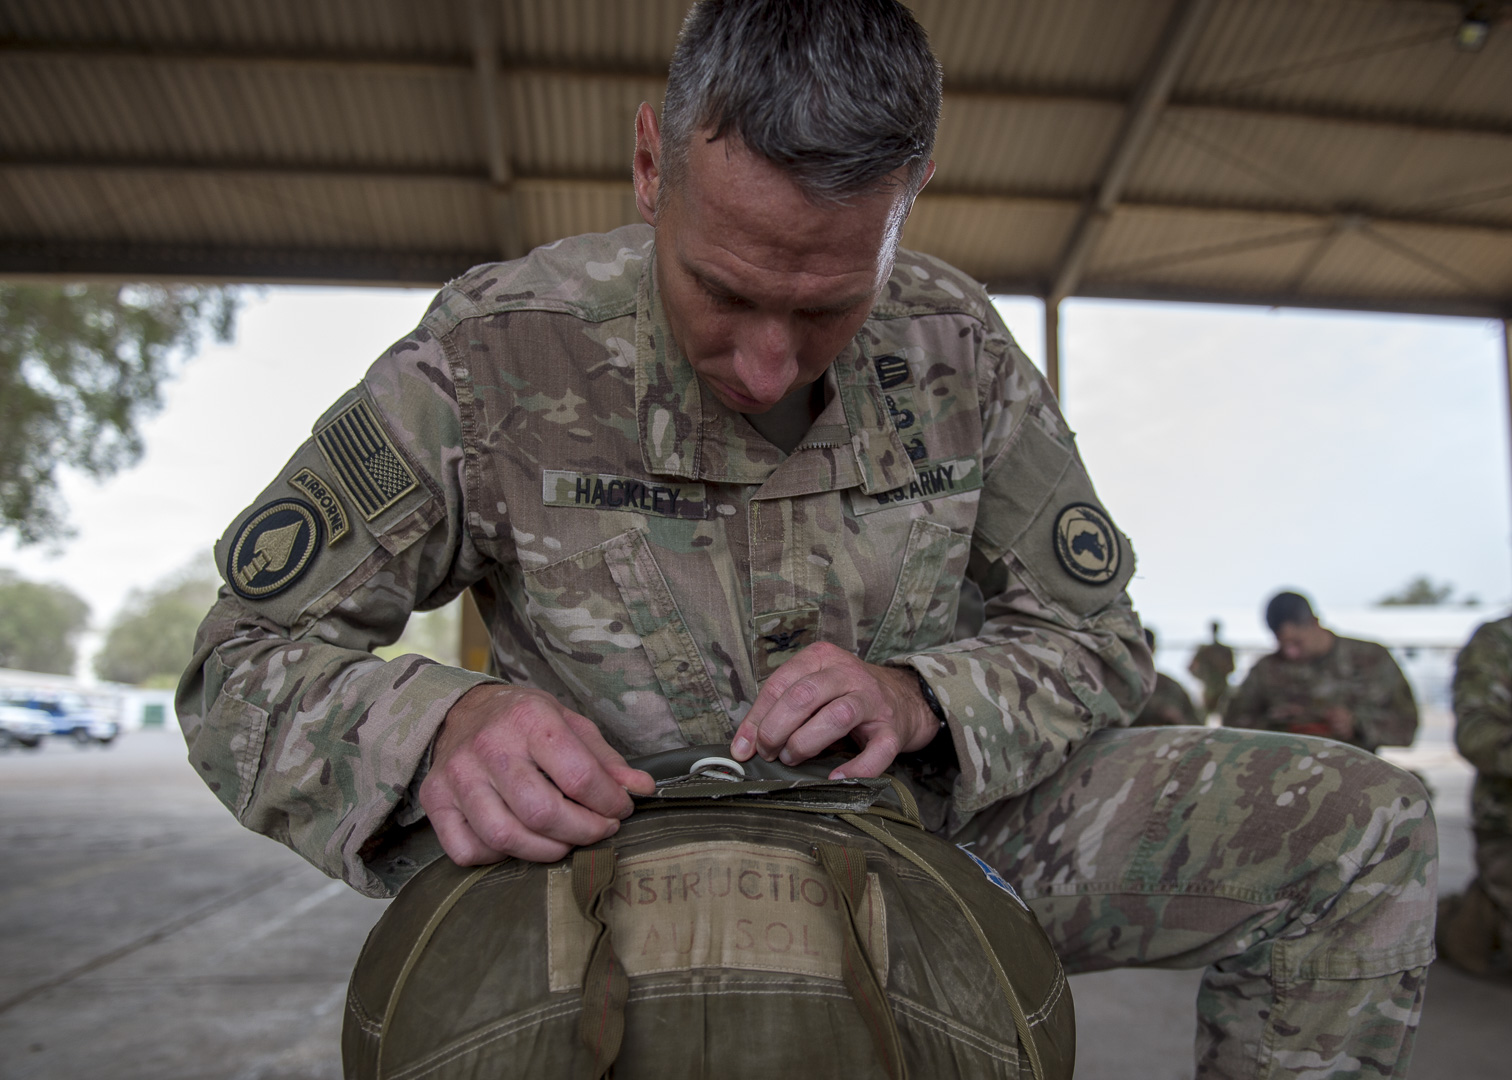 U.S. Army Col. Chad Hackley, director of intelligence, assigned to the Combined Joint Task Force-Horn of Africa, inspects his parachute during a training event with French Forces Djibouti, at Djibouti Air Base, Djibouti, Sept. 26, 2019. American service members and coalition partners jumped together to celebrate the Feast Day of Archangel Michael, the patron saint of paratroopers.(U.S. Air Force Photo by Senior Airman Codie Trimble)